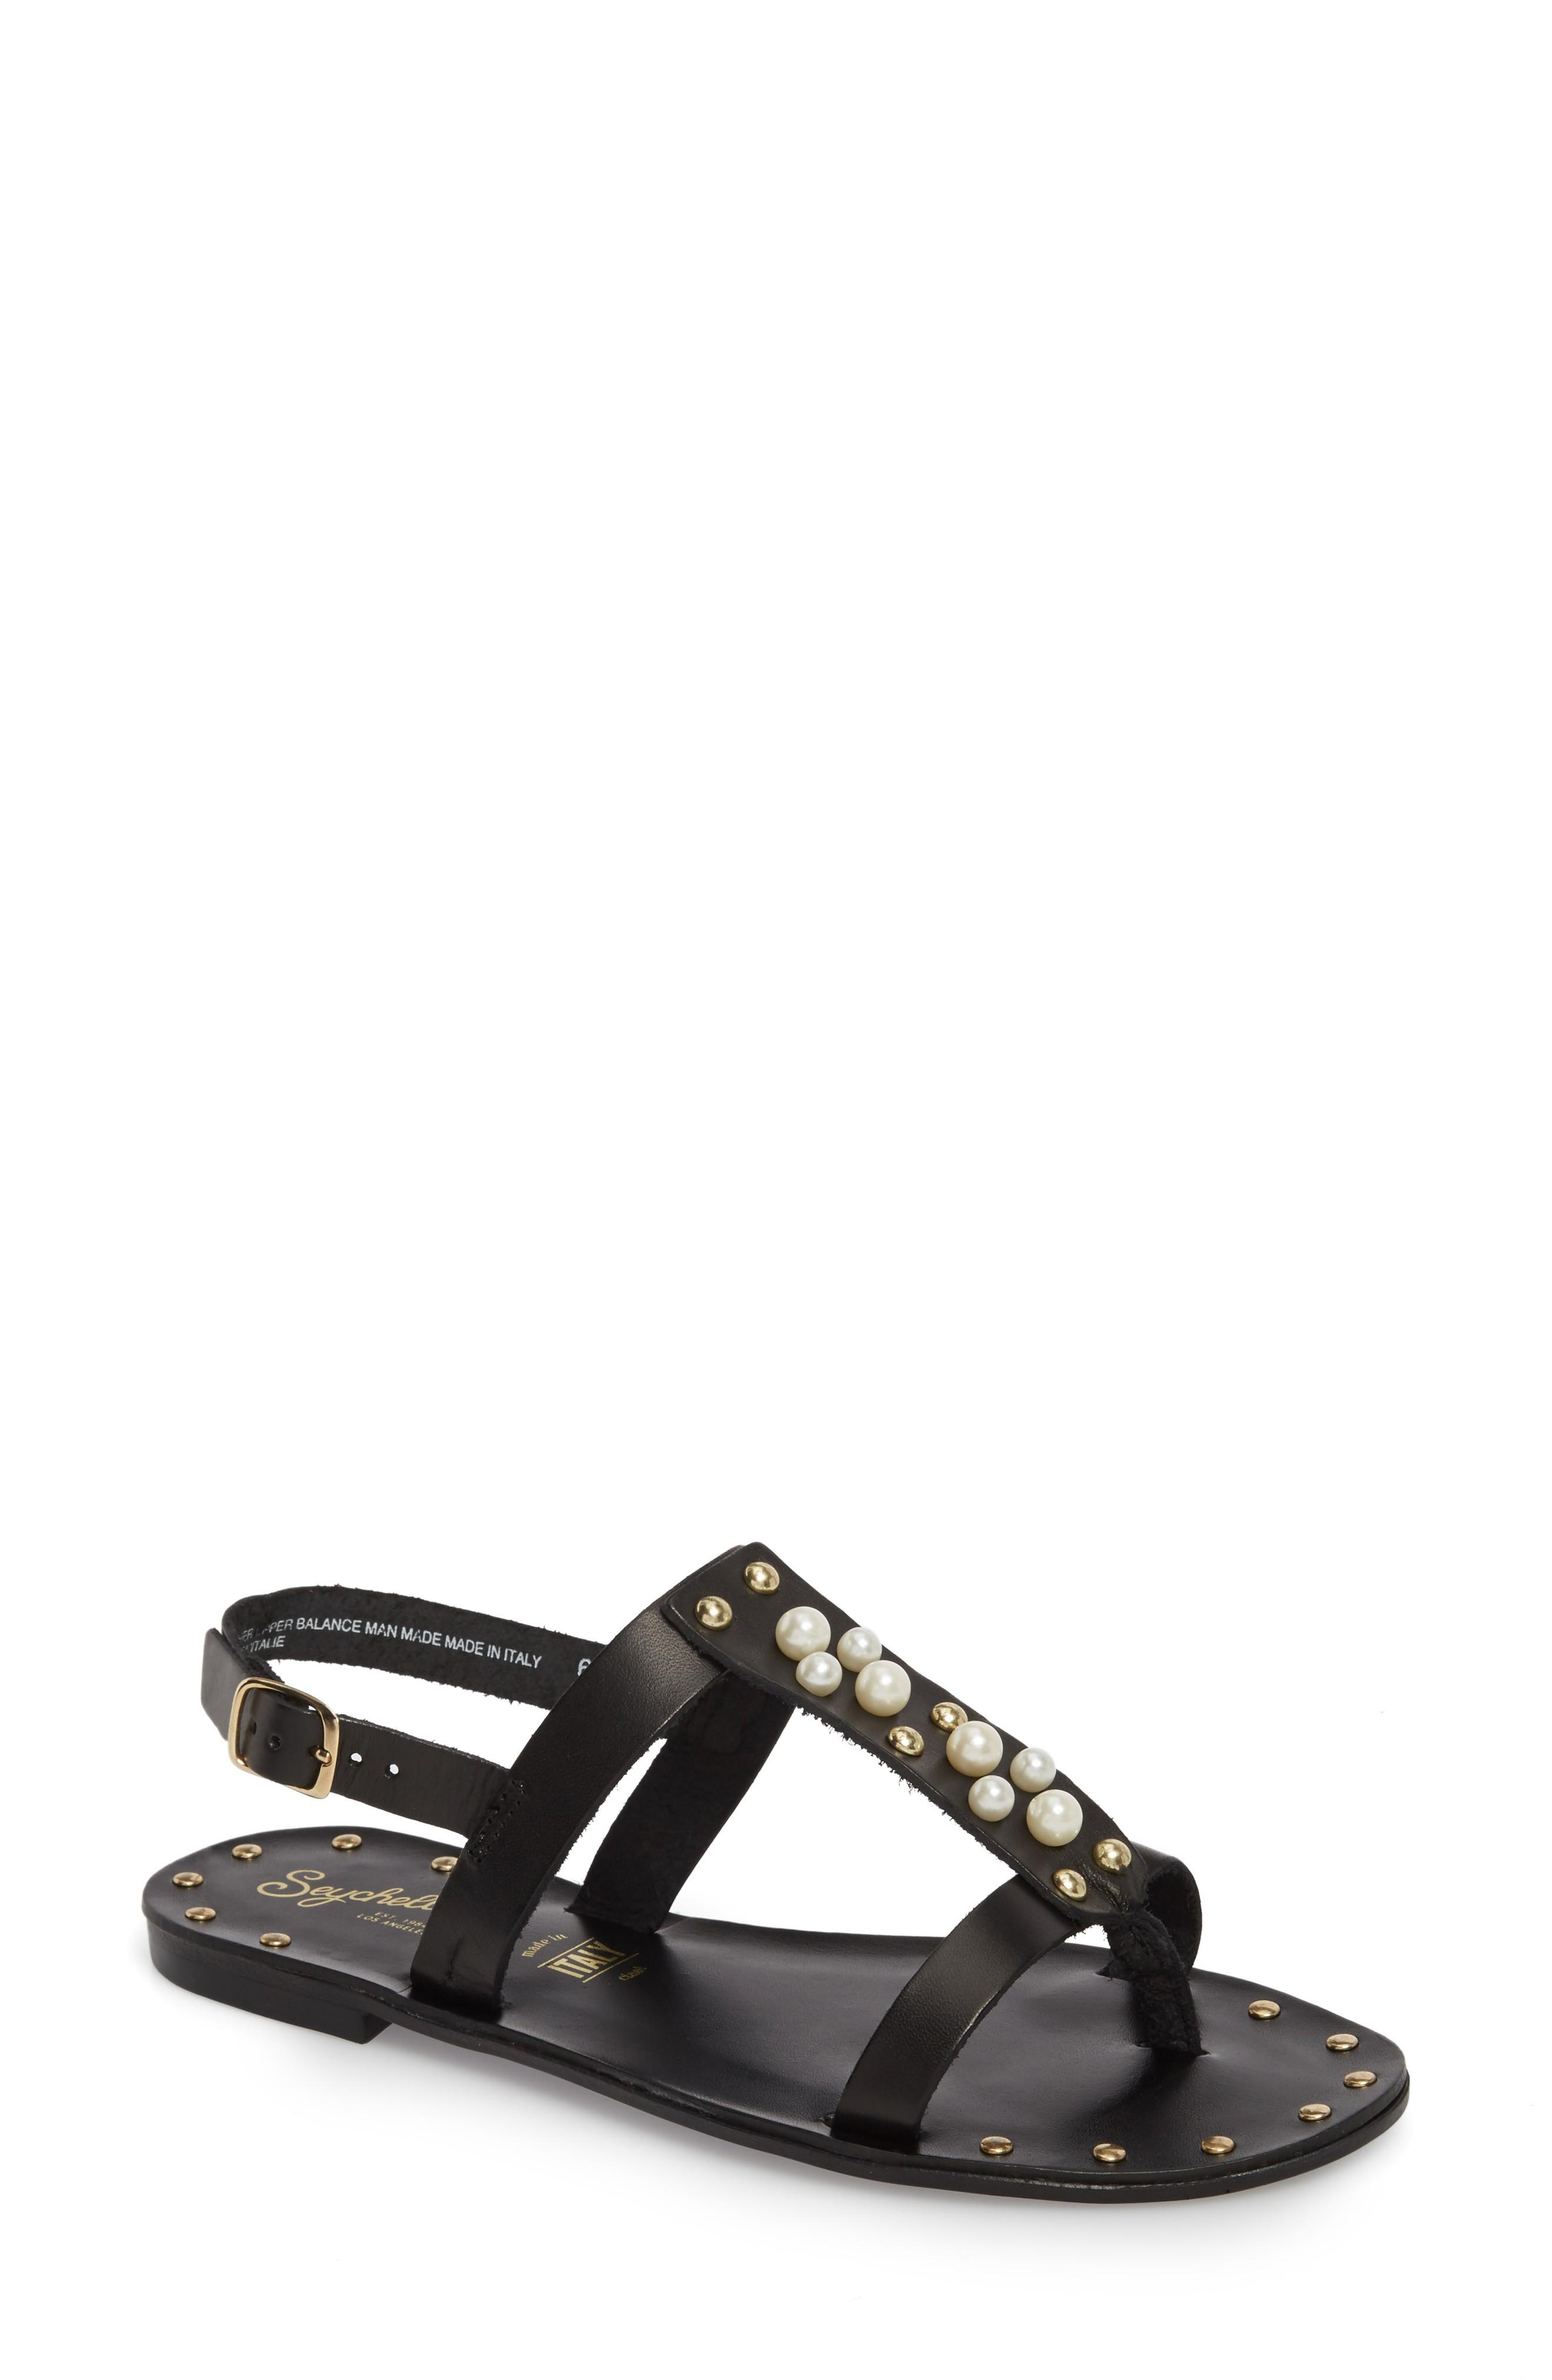 Seychelles Day Of Rest Sandal In Black Leather